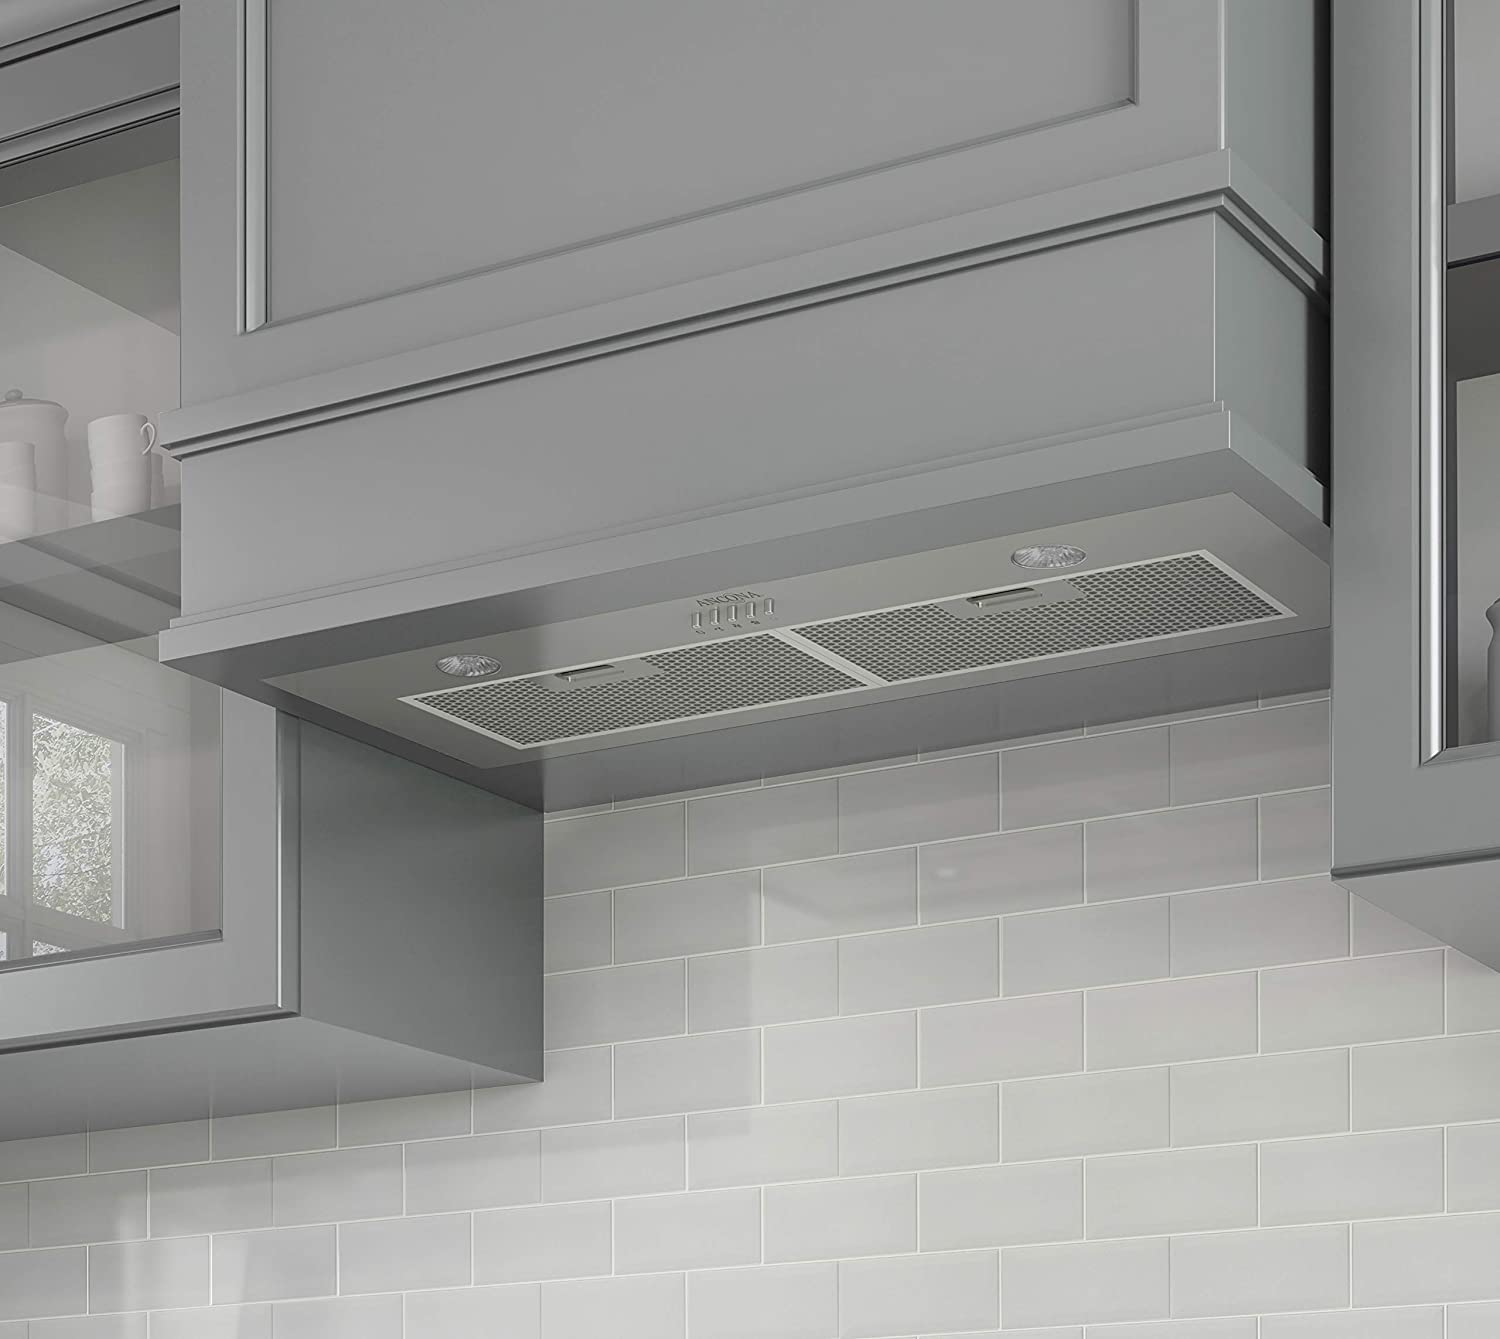 Broan Powder-Coated Power Pack Range Hood Insert Silver ENERGY STAR Certified 52 Exhaust Fan and Light Combo for Over Kitchen Stove 0.5 Sones 290 CFM